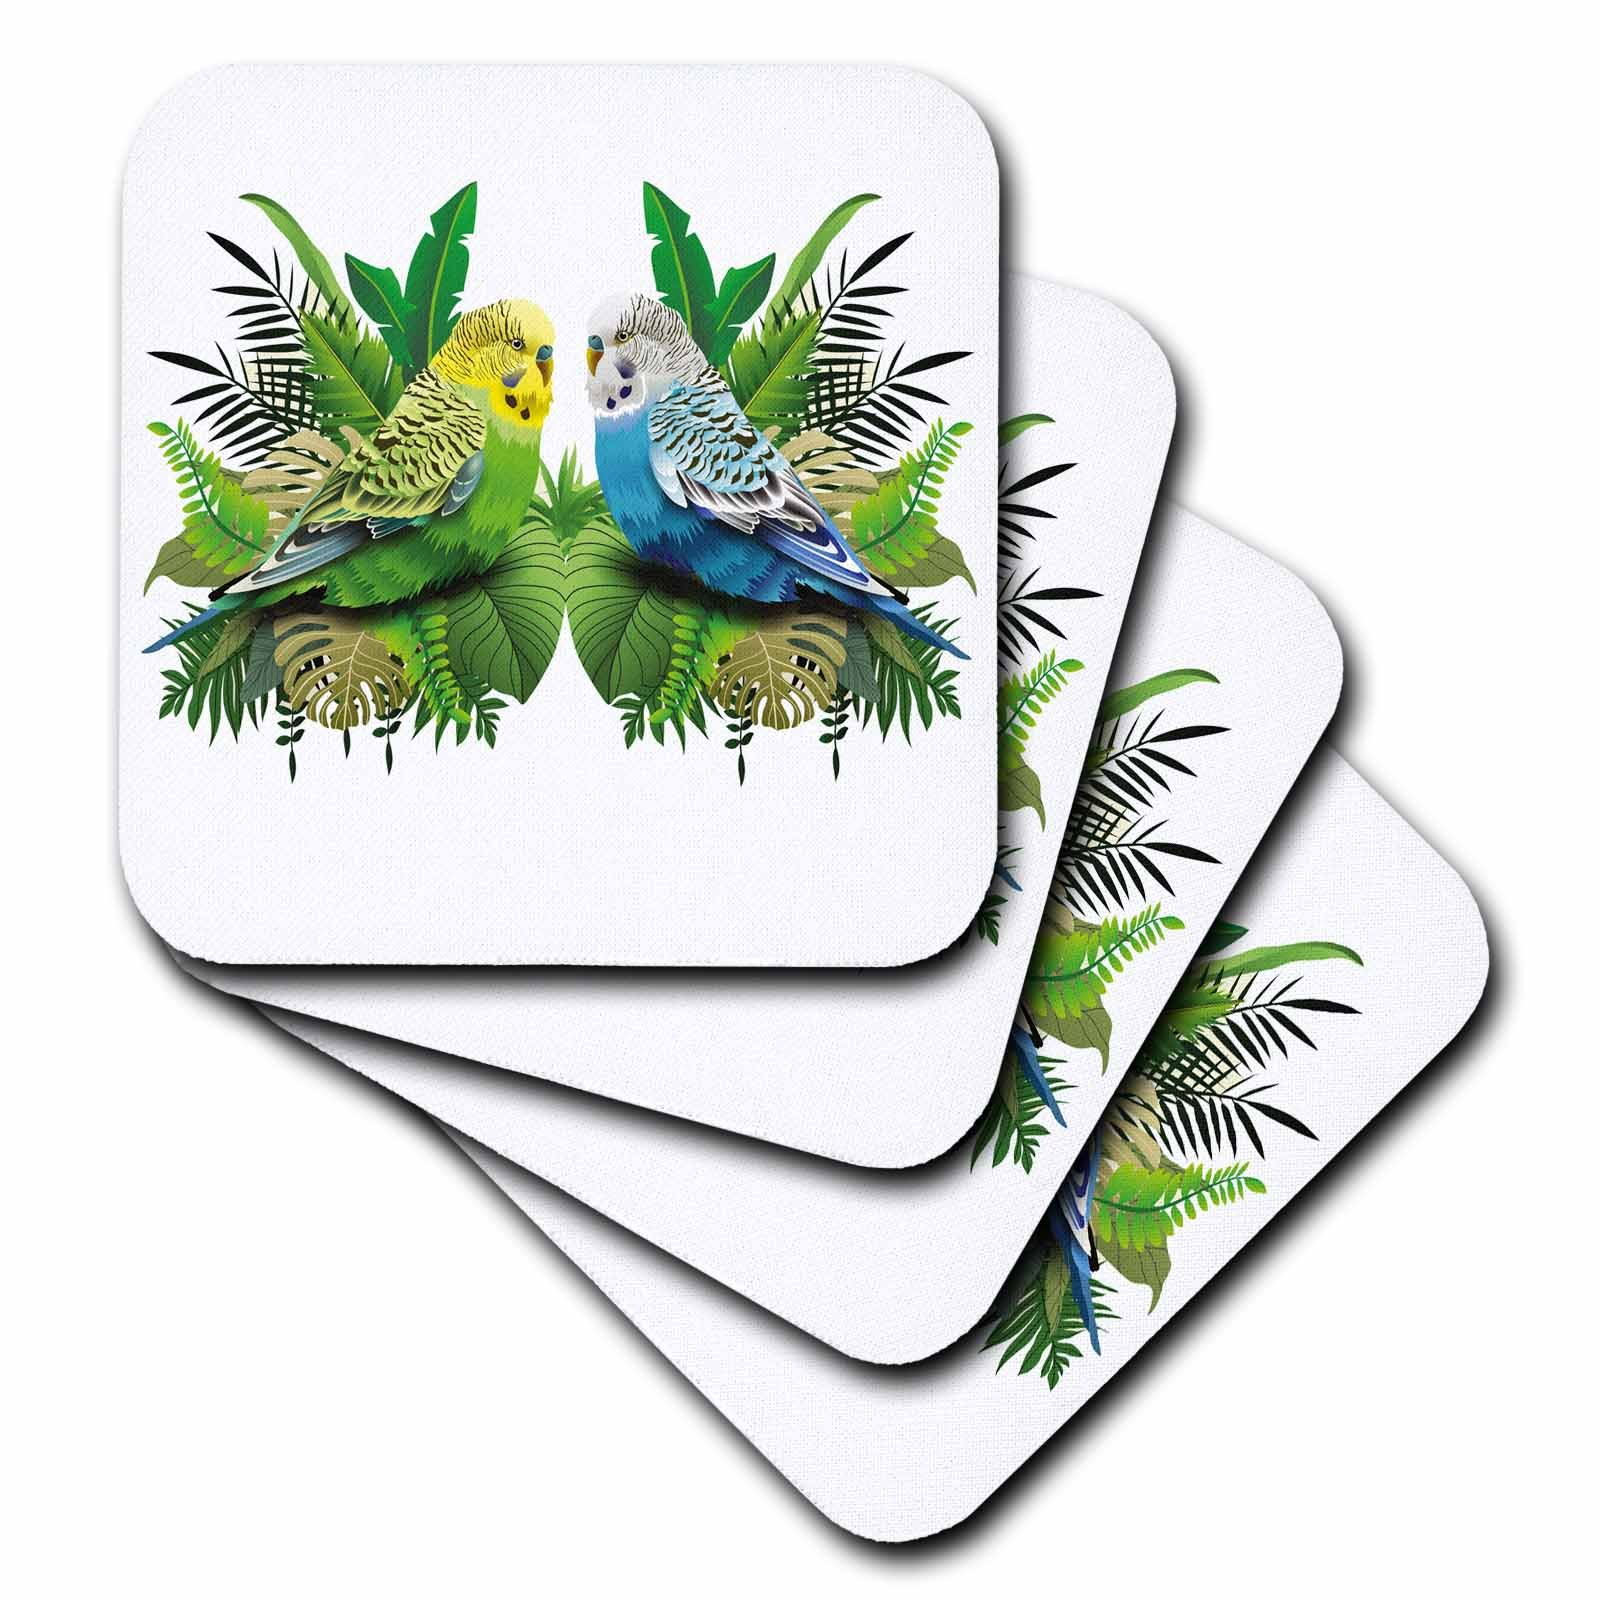 3dRose Sven Herkenrath Animal - Two Budgies Parakeets Sitting in Love in the Bush Jungle - set of 4 Coasters - Soft (cst_280373_1)